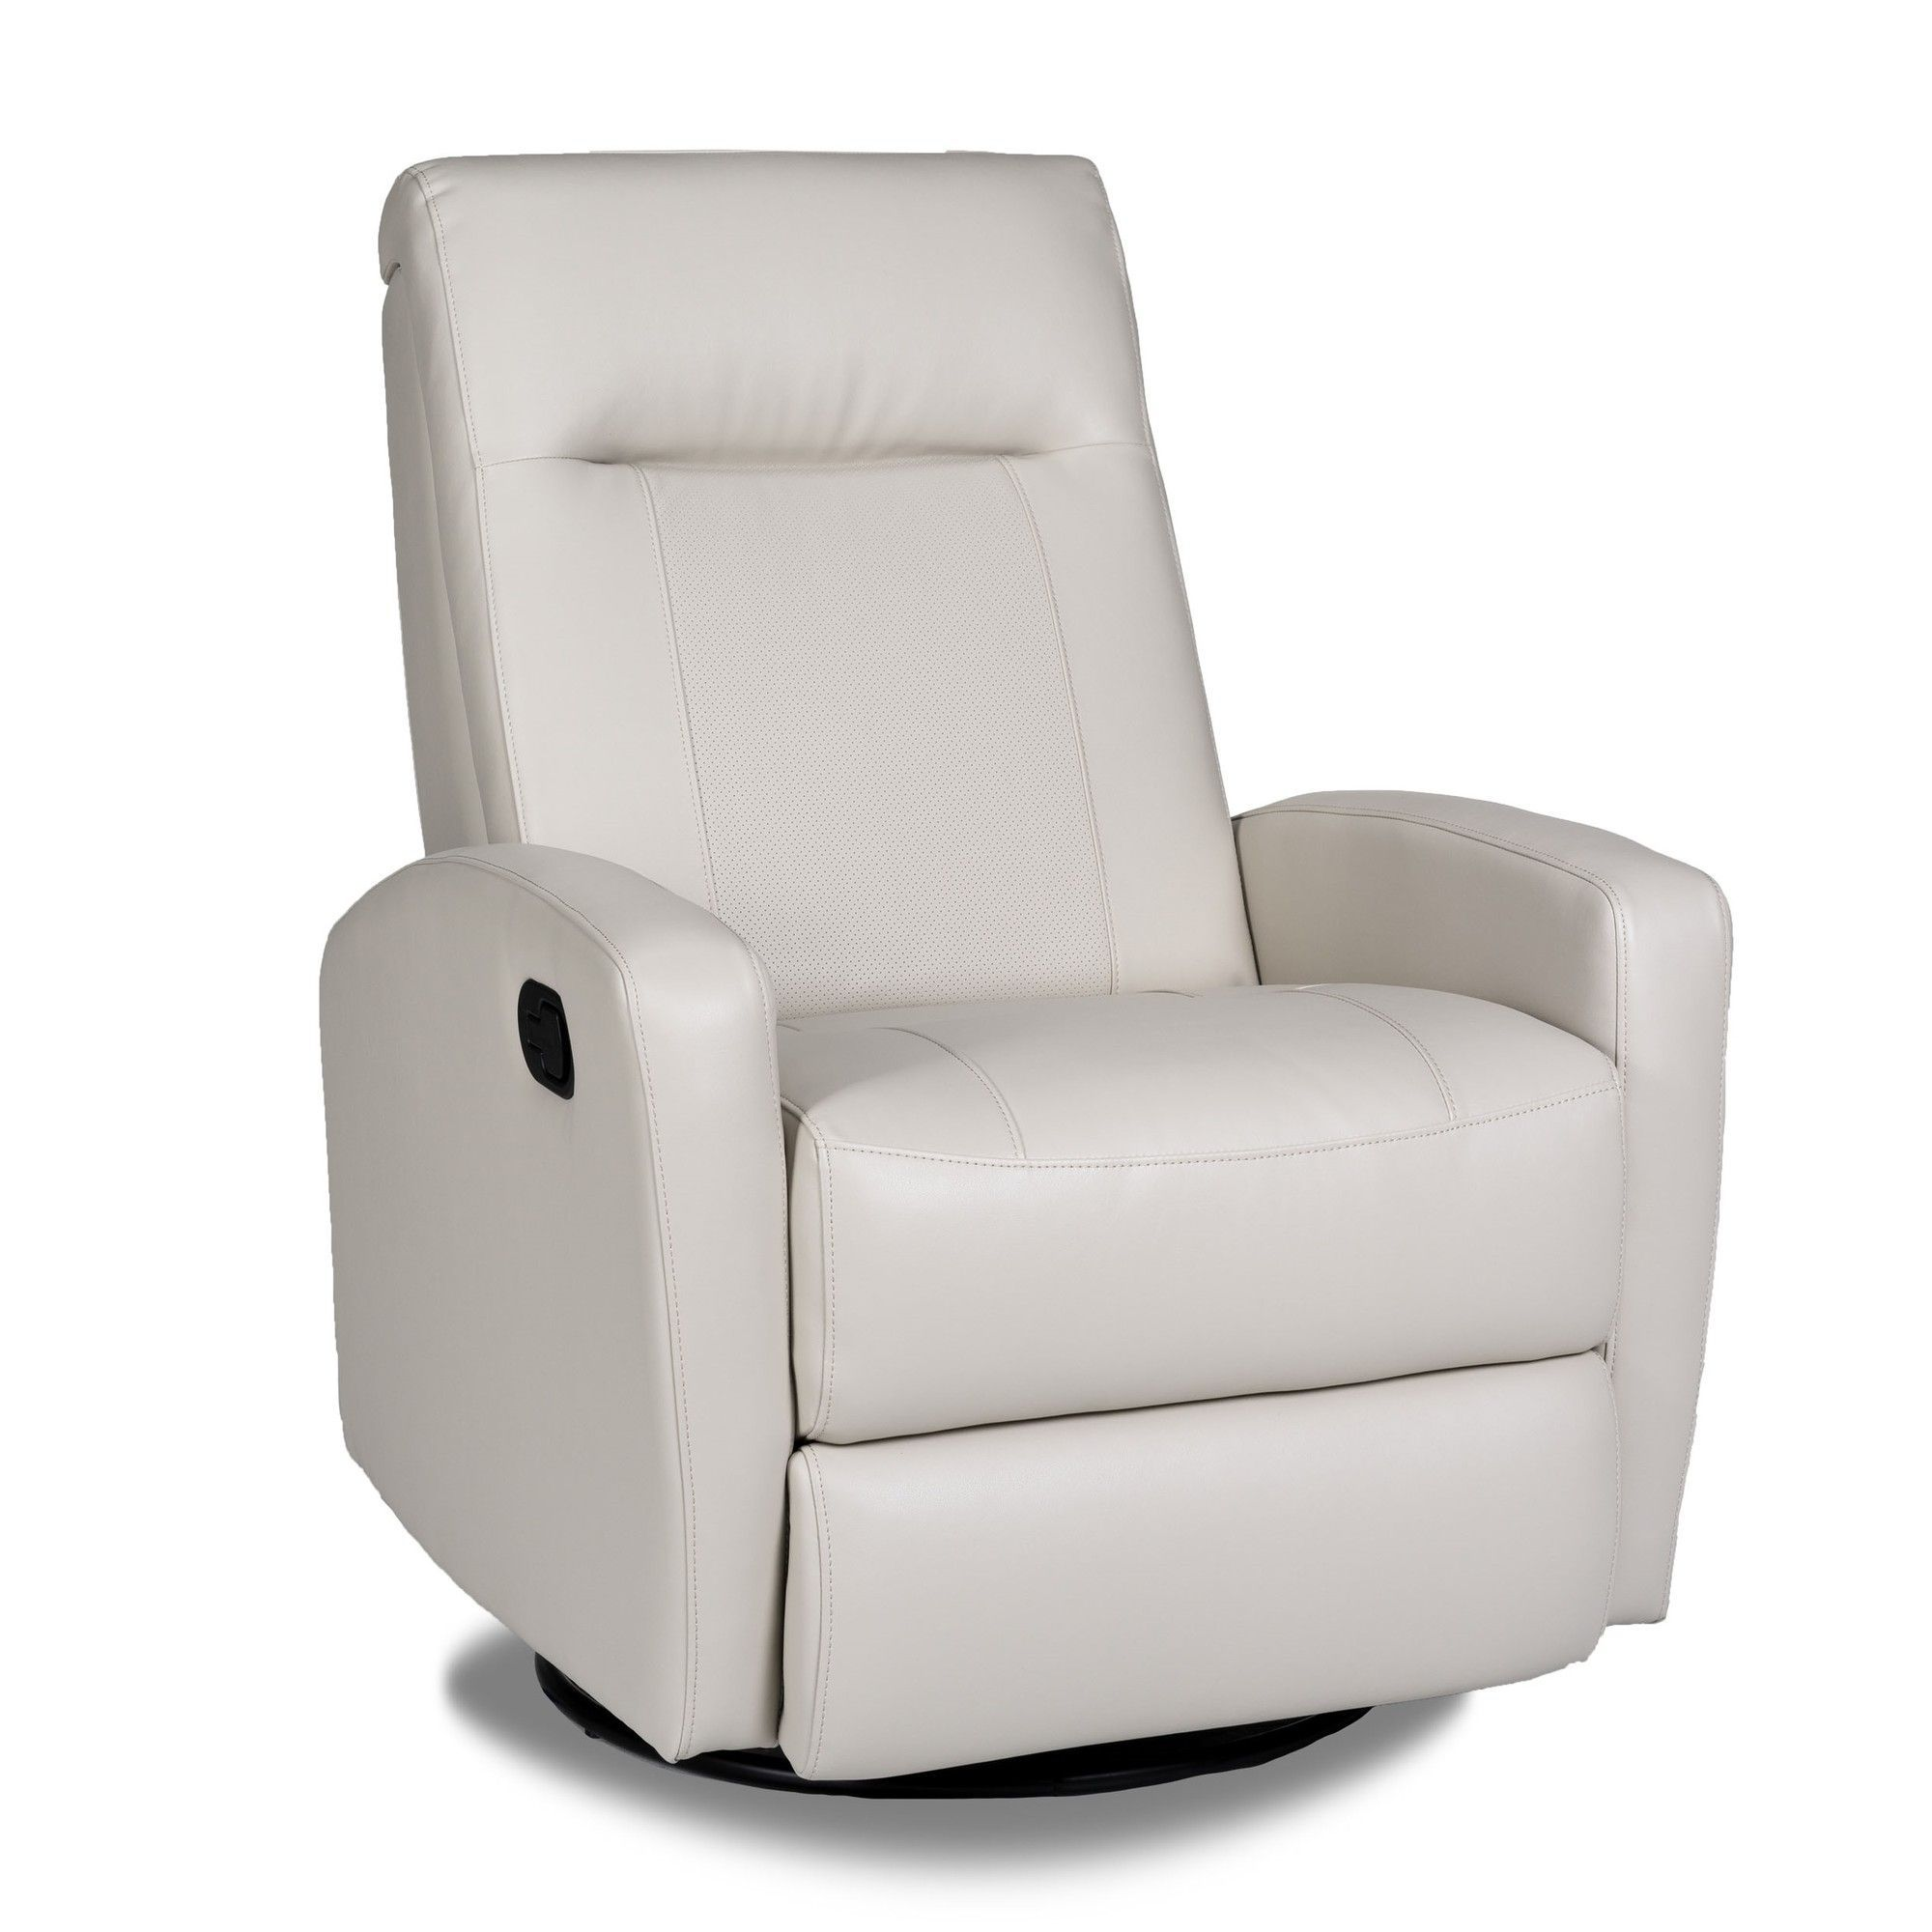 Stefan Bonded Leather Swivel Glider Recliner Products